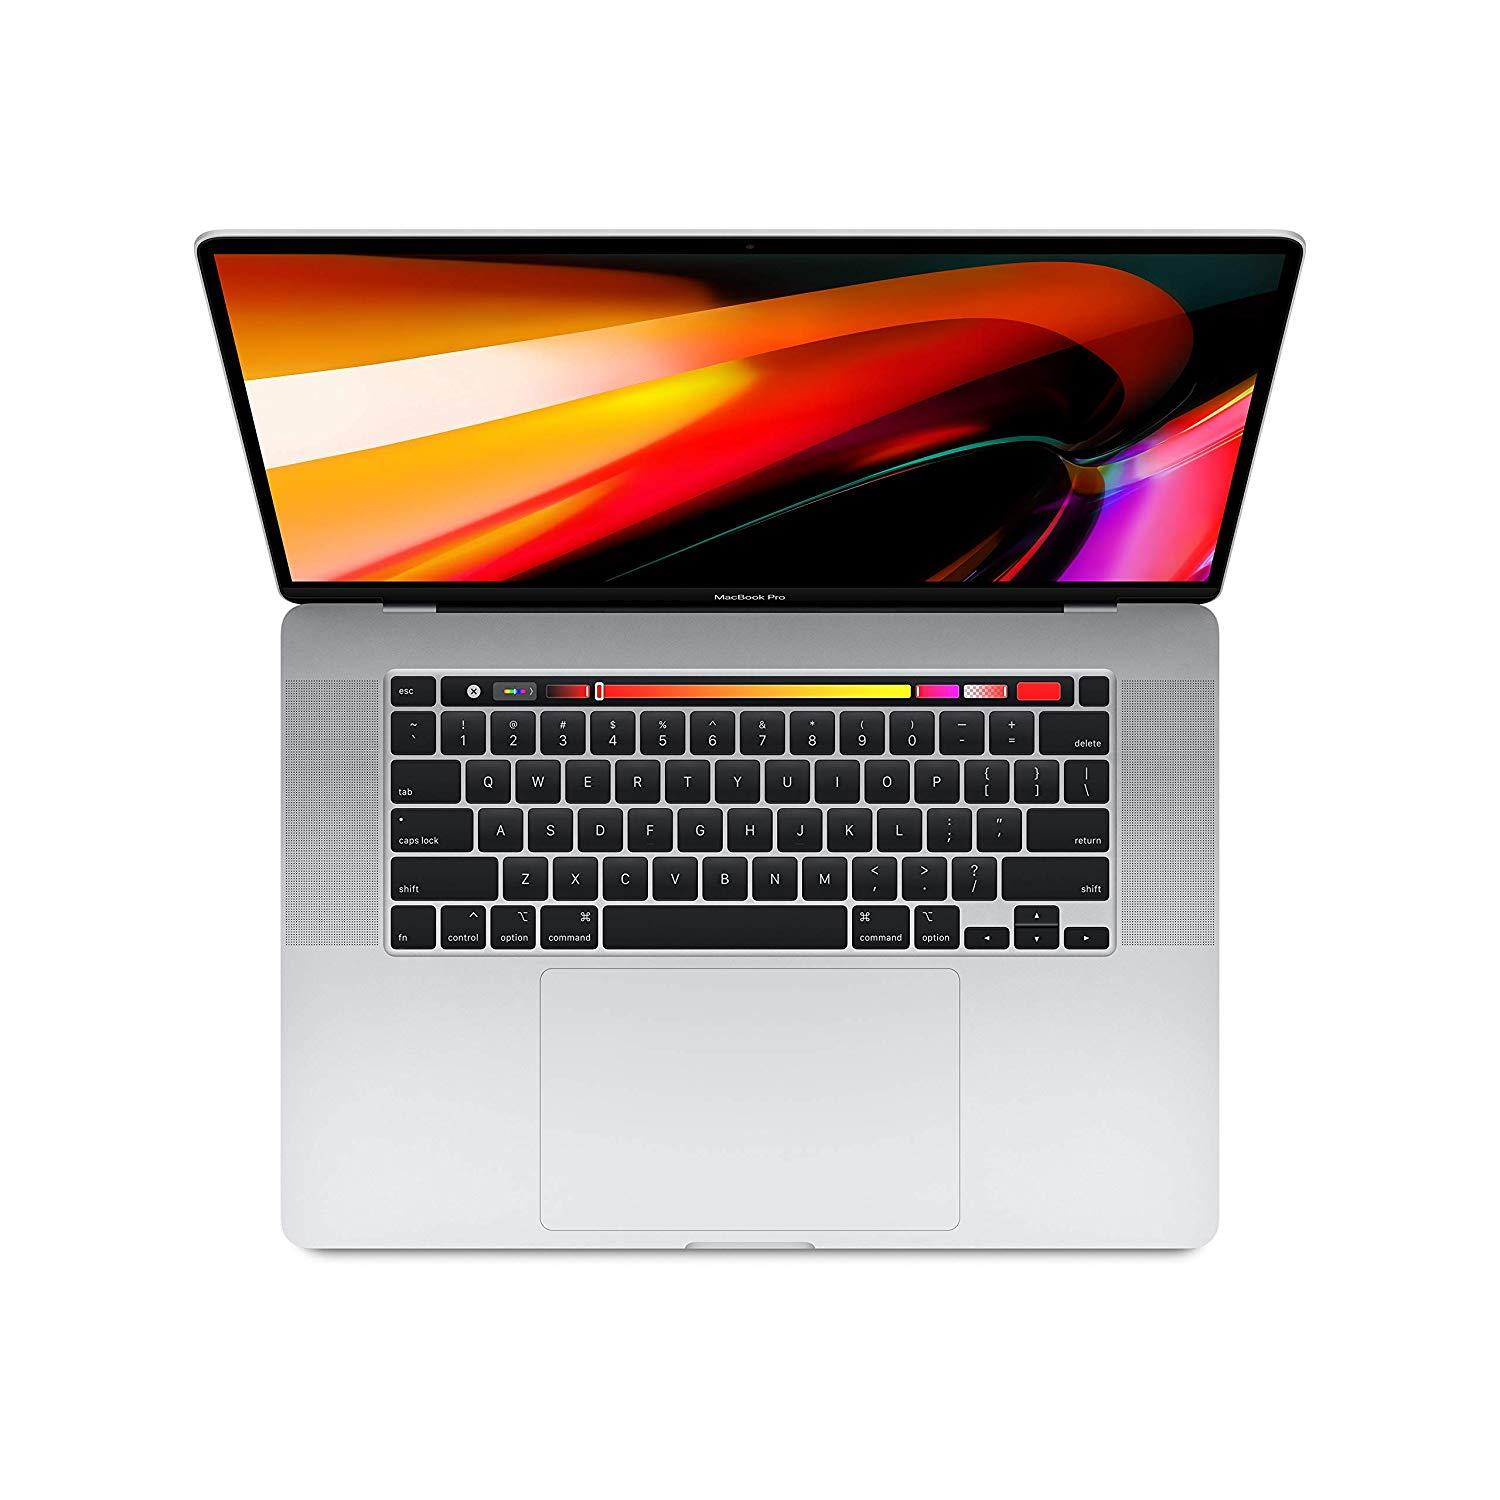 Apple MacBook Pro 15, Silver